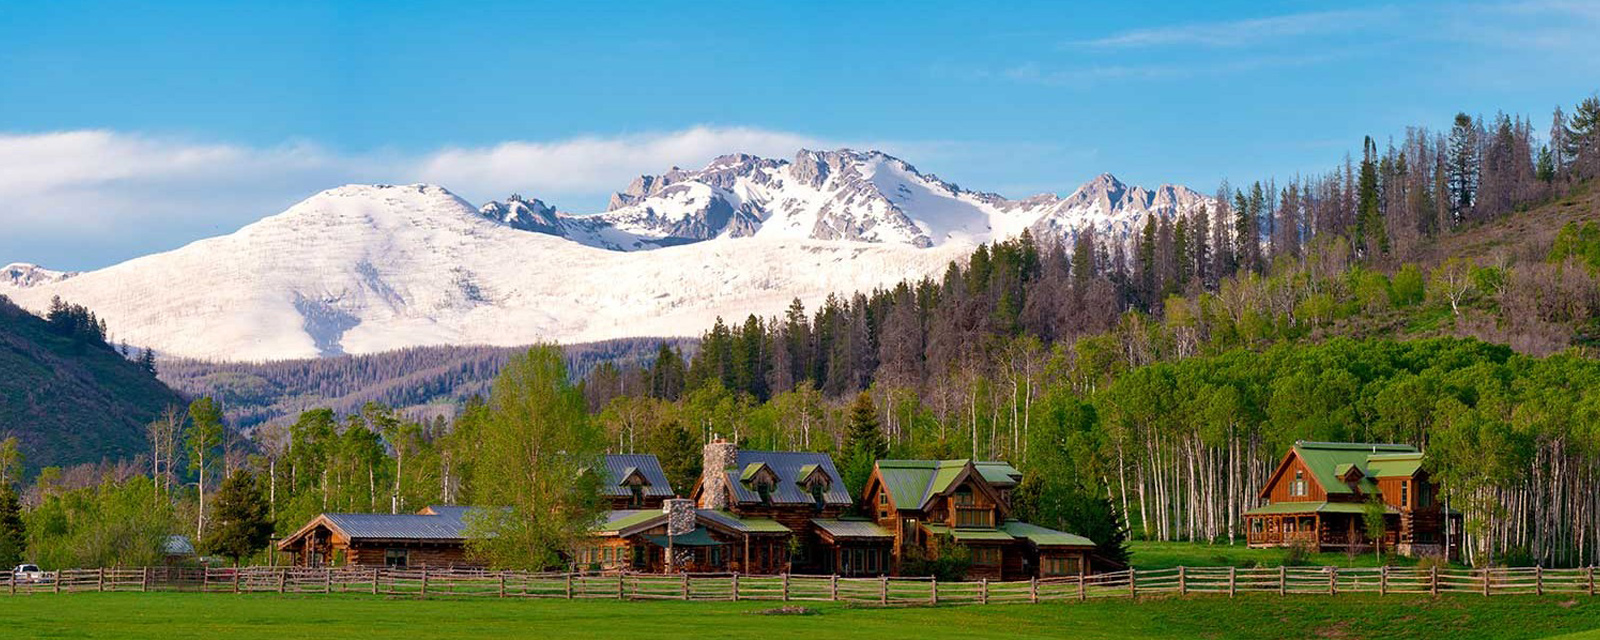 The Home Ranch - ÉTATS-UNIS